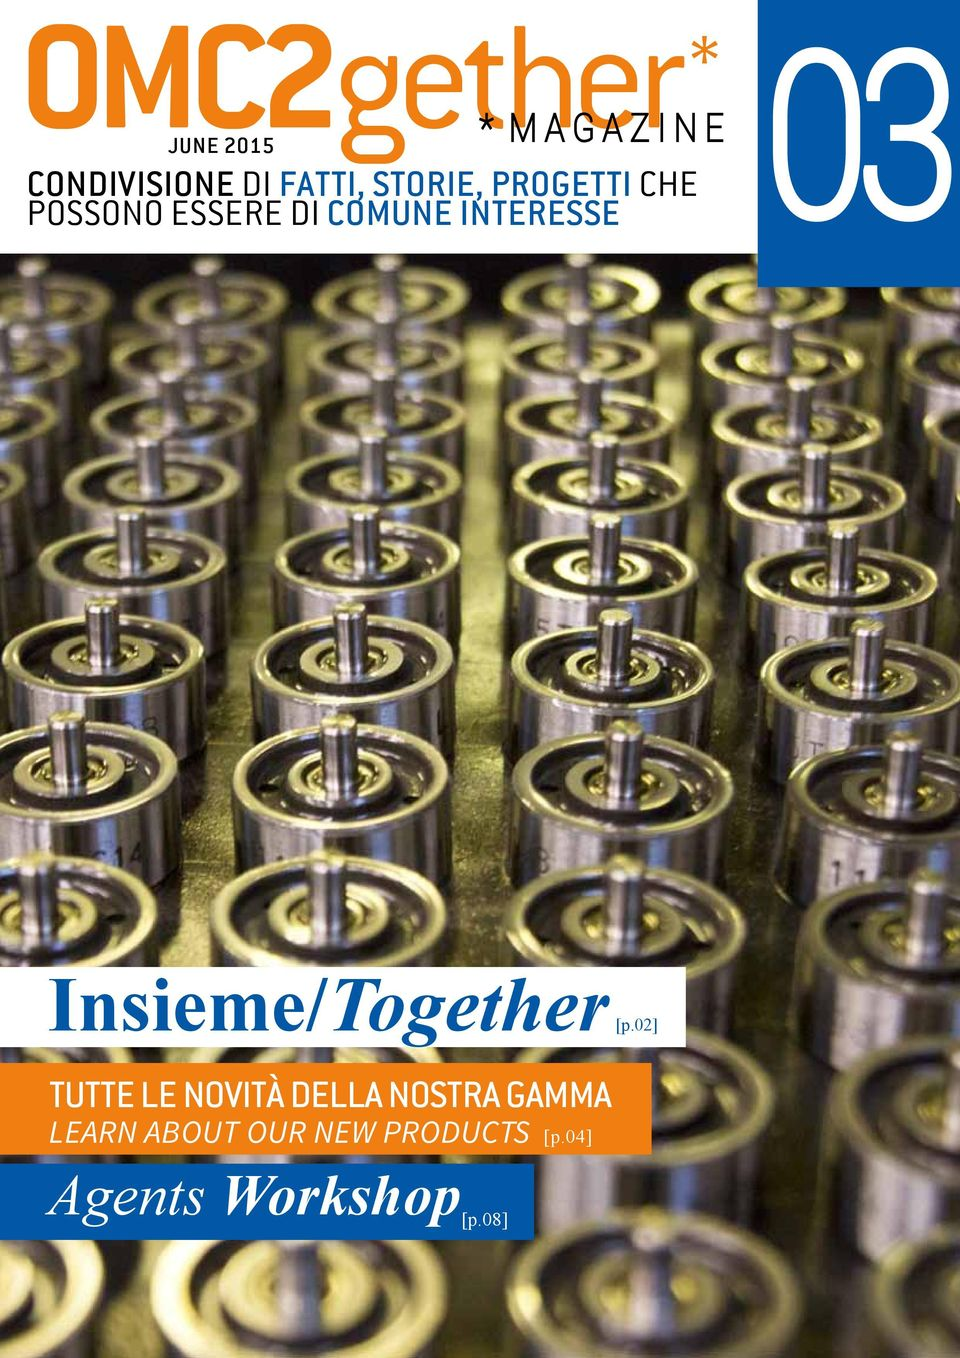 Insieme/Together[p.